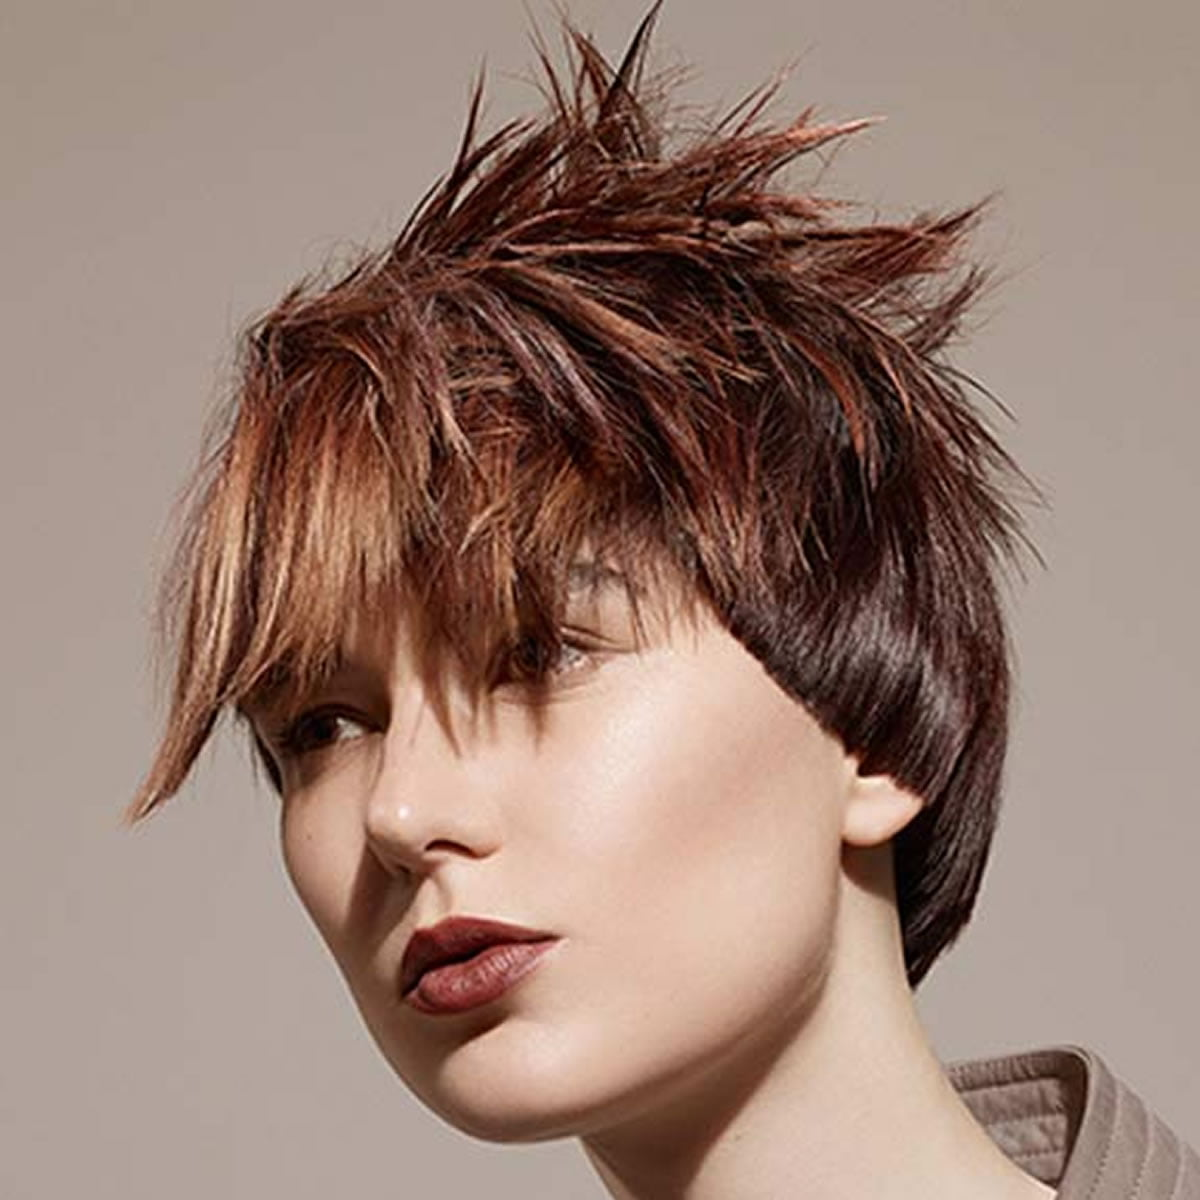 Spring Hair 2019: Short Hair Hairstyles For Spring & Summer 2018-2019